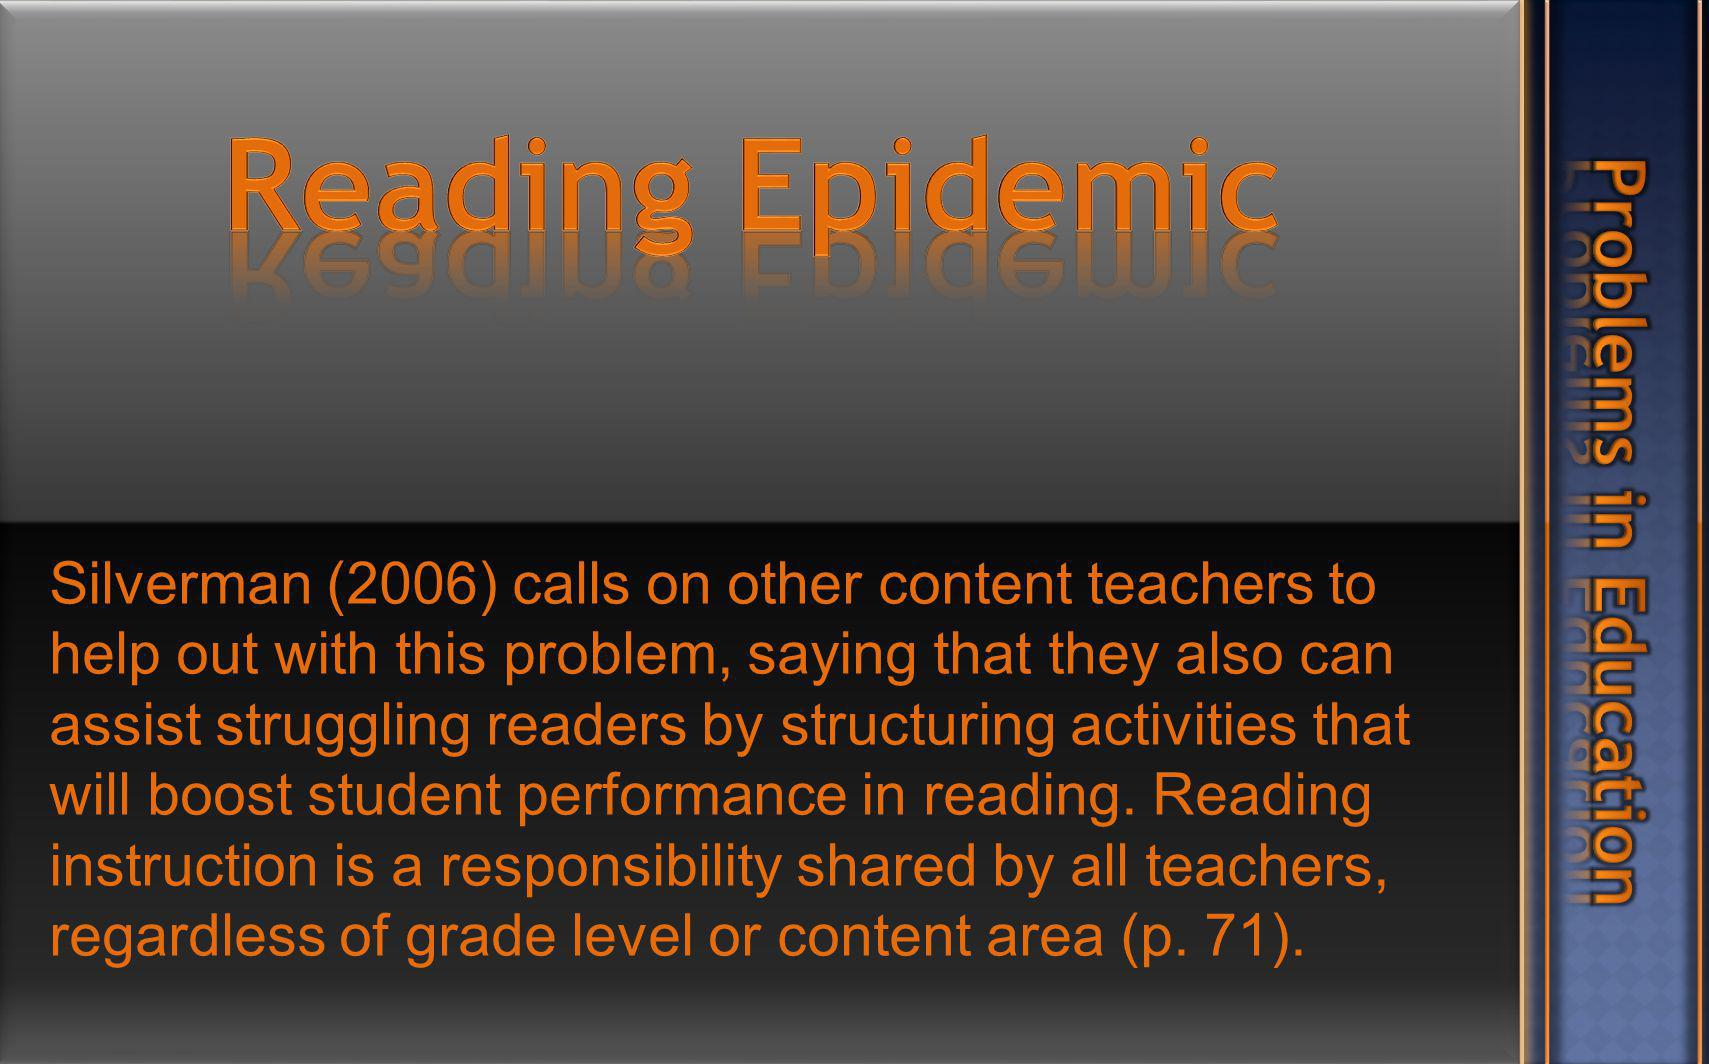 Silverman (2006) calls on other content teachers to help out with this problem, saying that they also can assist struggling readers by structuring activities that will boost student performance in reading.